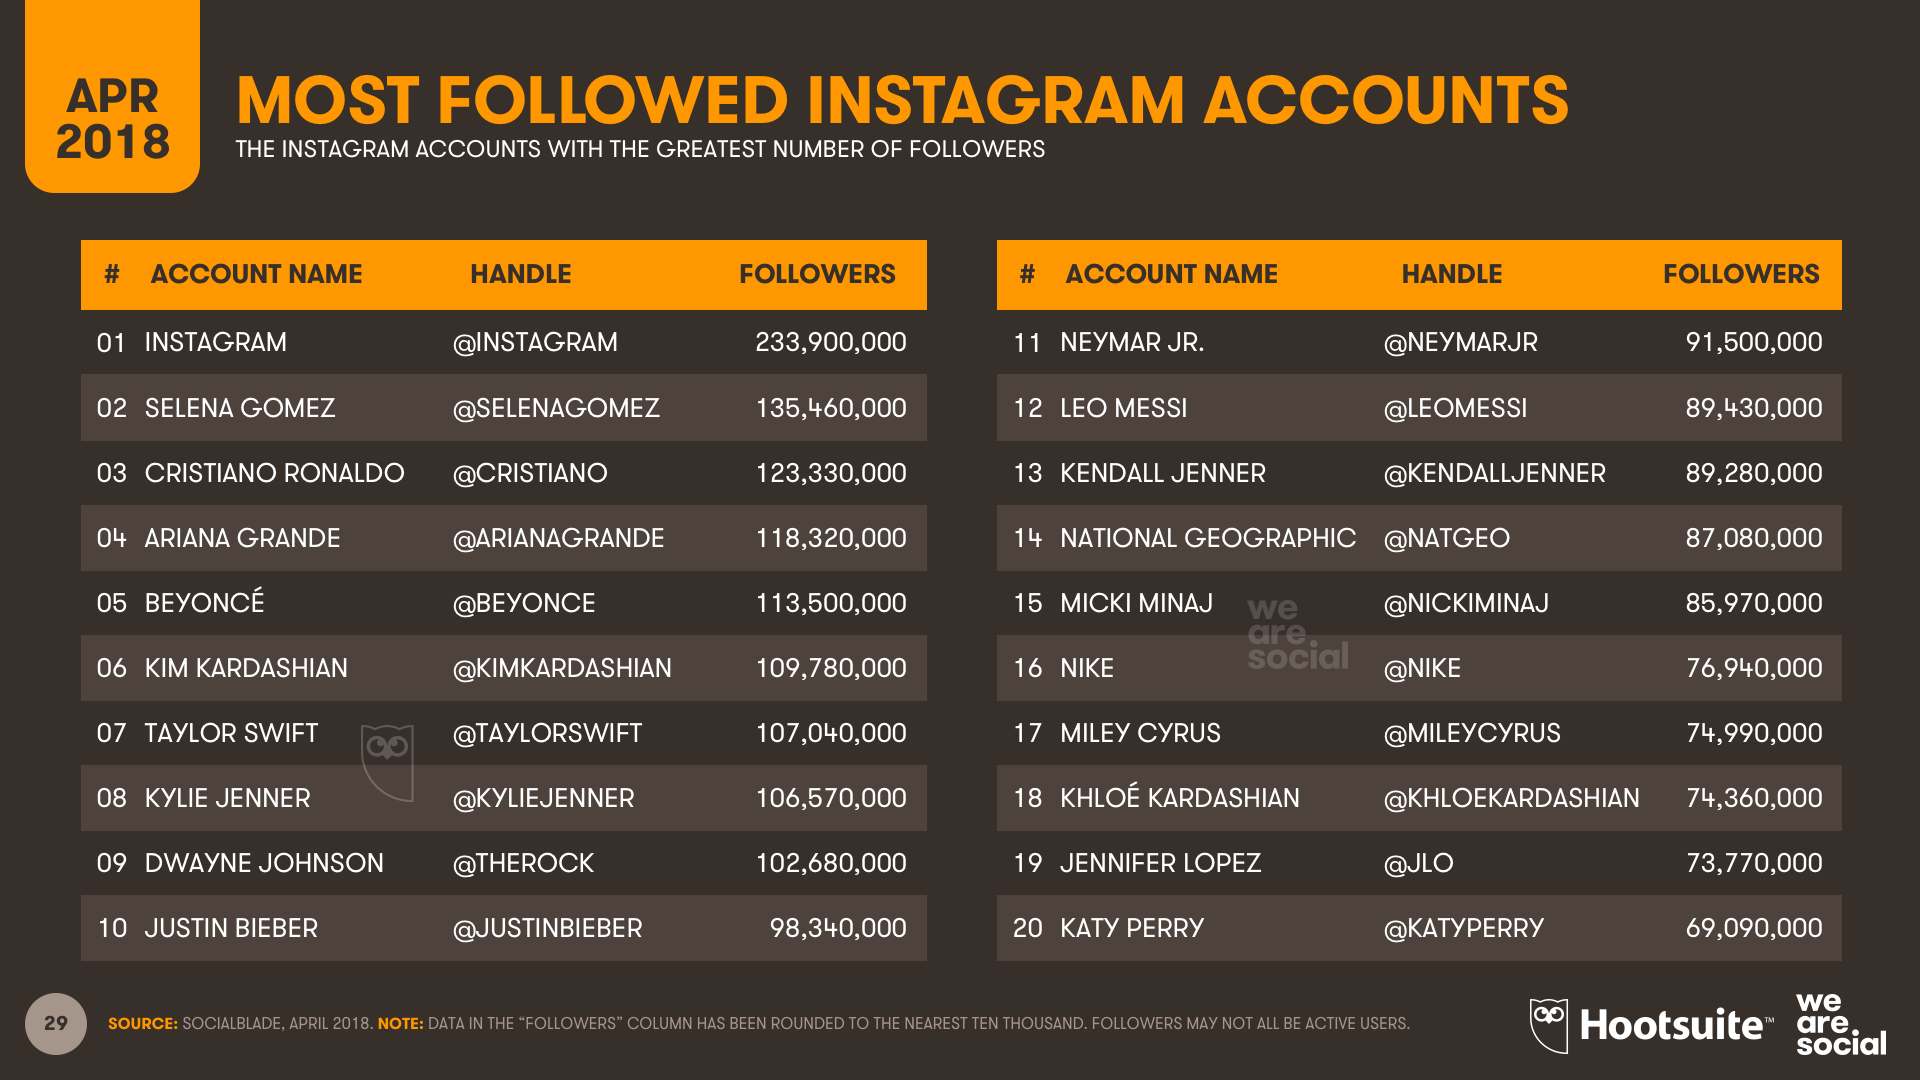 Instagram Most Followed - Q1 2018